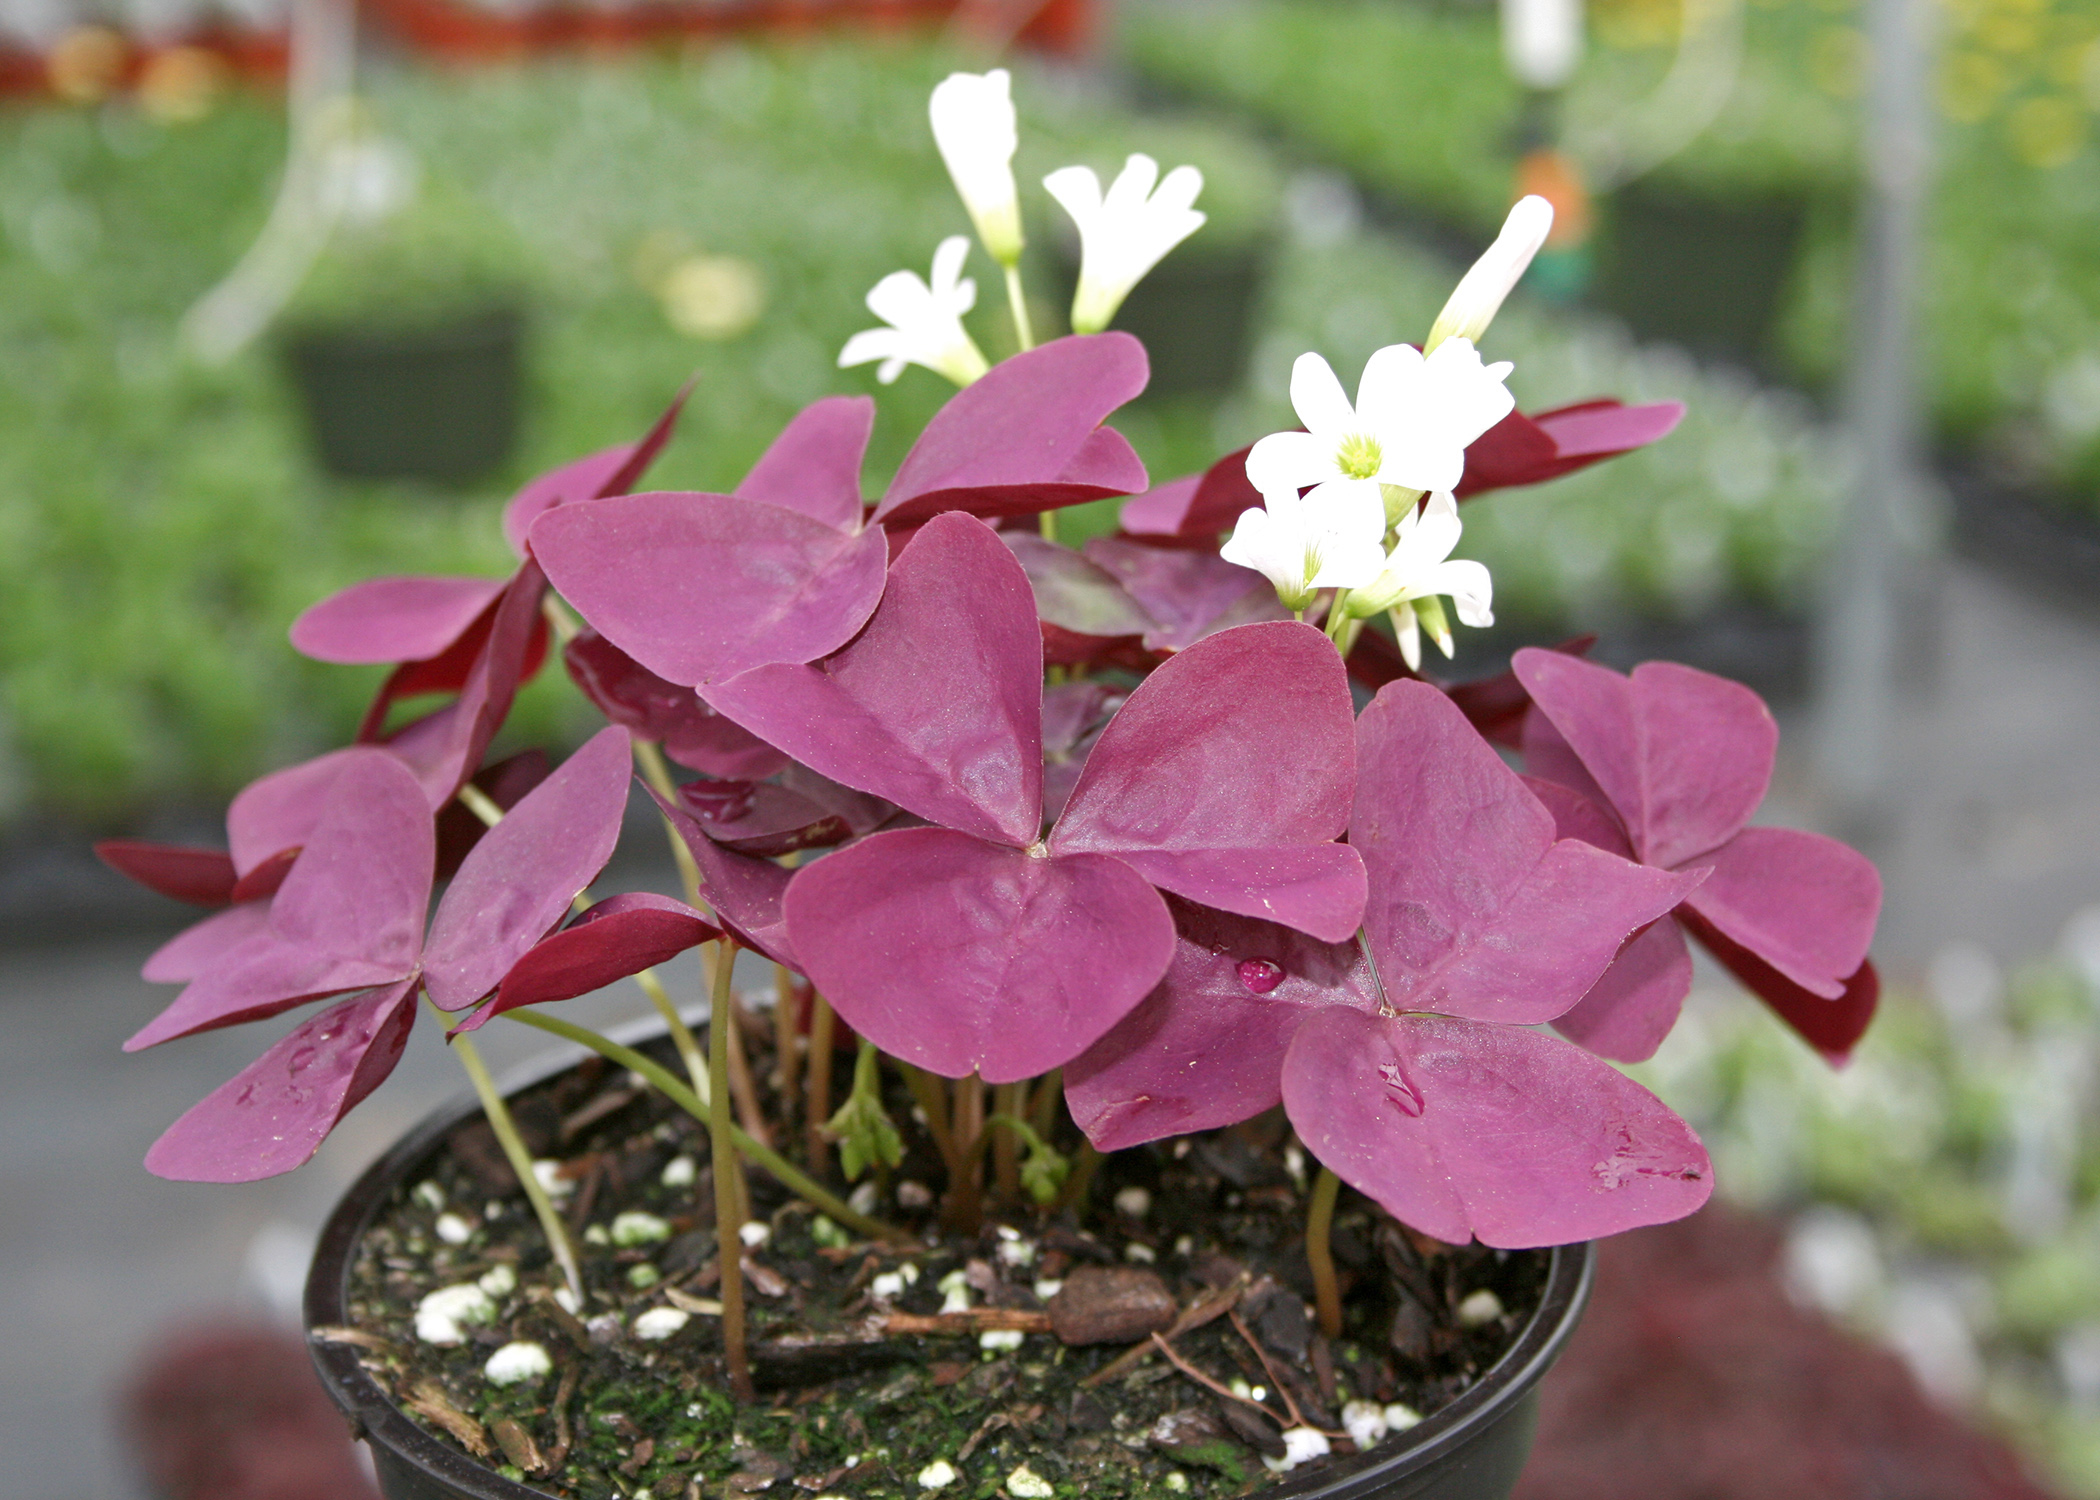 Shamrocks are good landscape additions mississippi state mississippi state university bulldog fans can find plenty of uses for the maroon foliage of the mightylinksfo